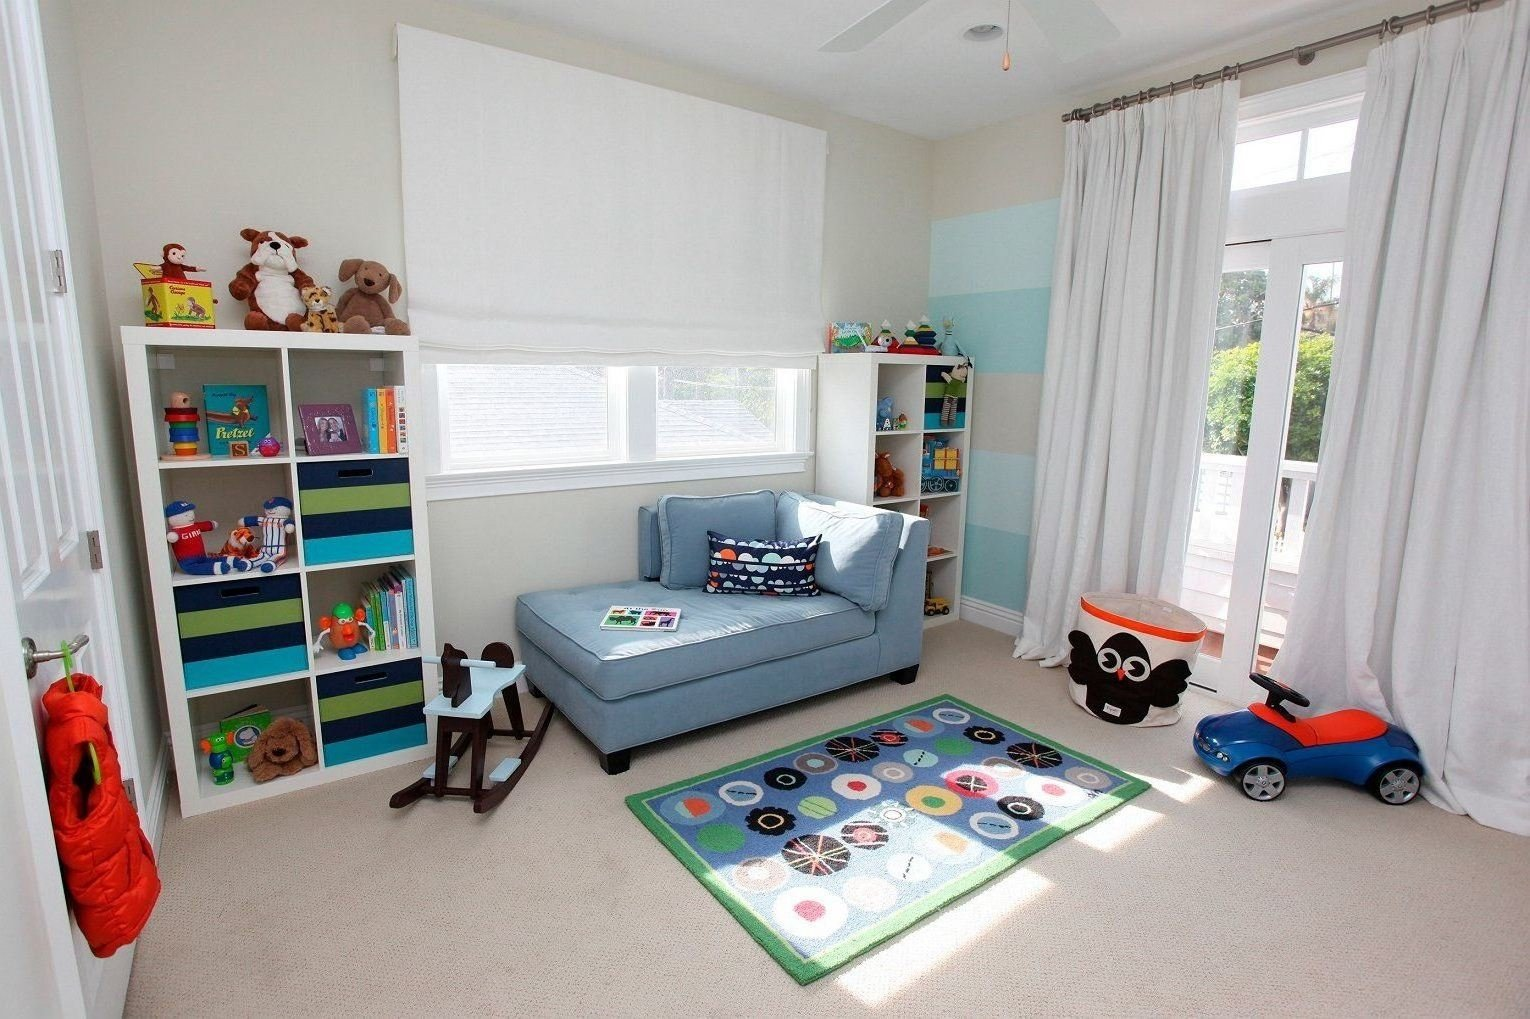 10 Fantastic Toddler Room Ideas For Boys toddlers room decor ideas army themed boys room design white modern 2021